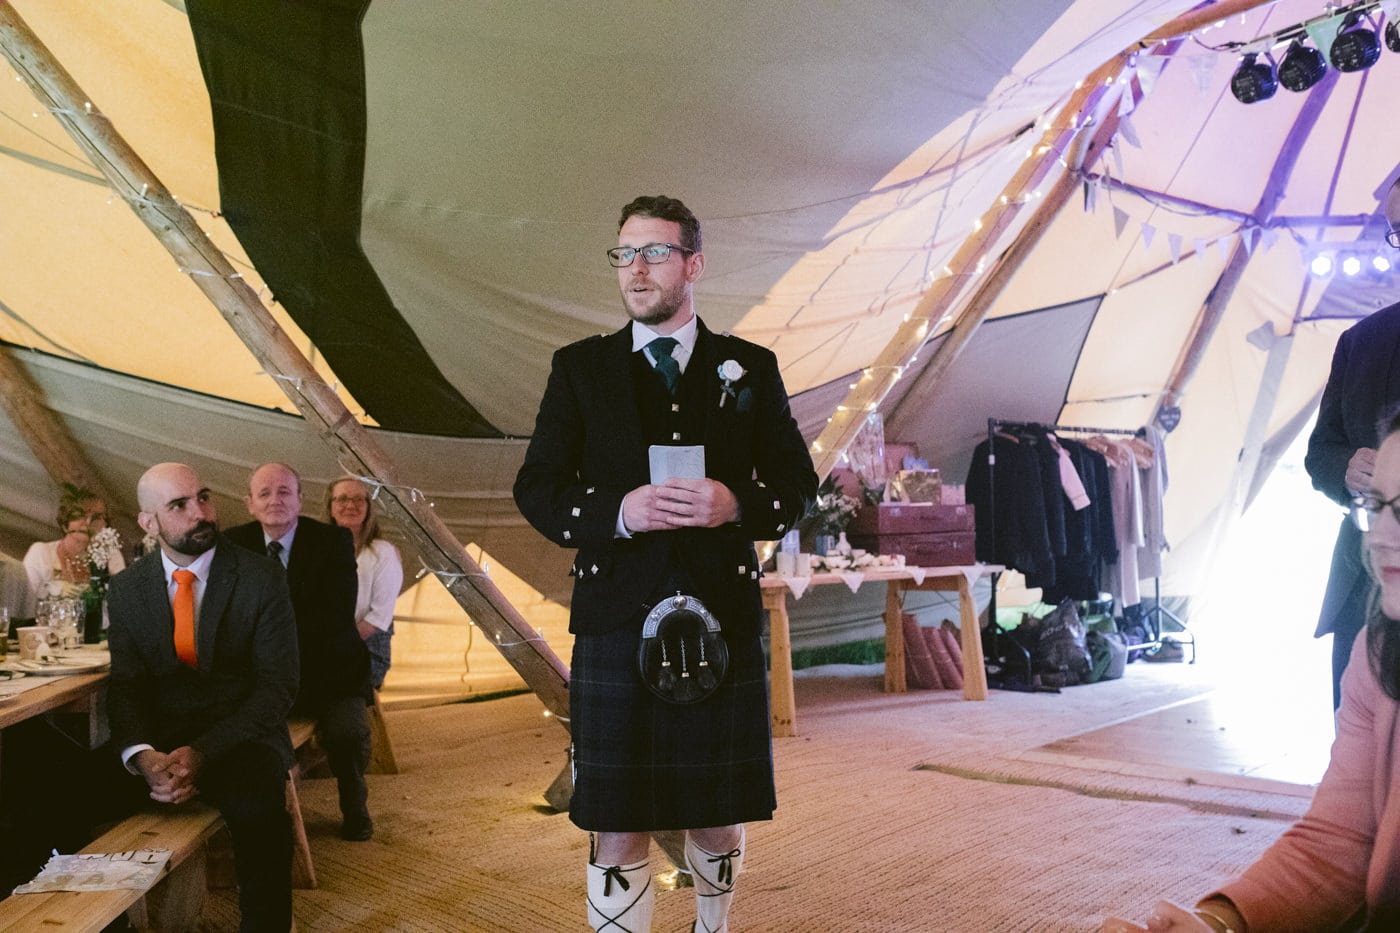 Tipi Tent Speech at Tipi Wedding On The Shores Of Ullswater